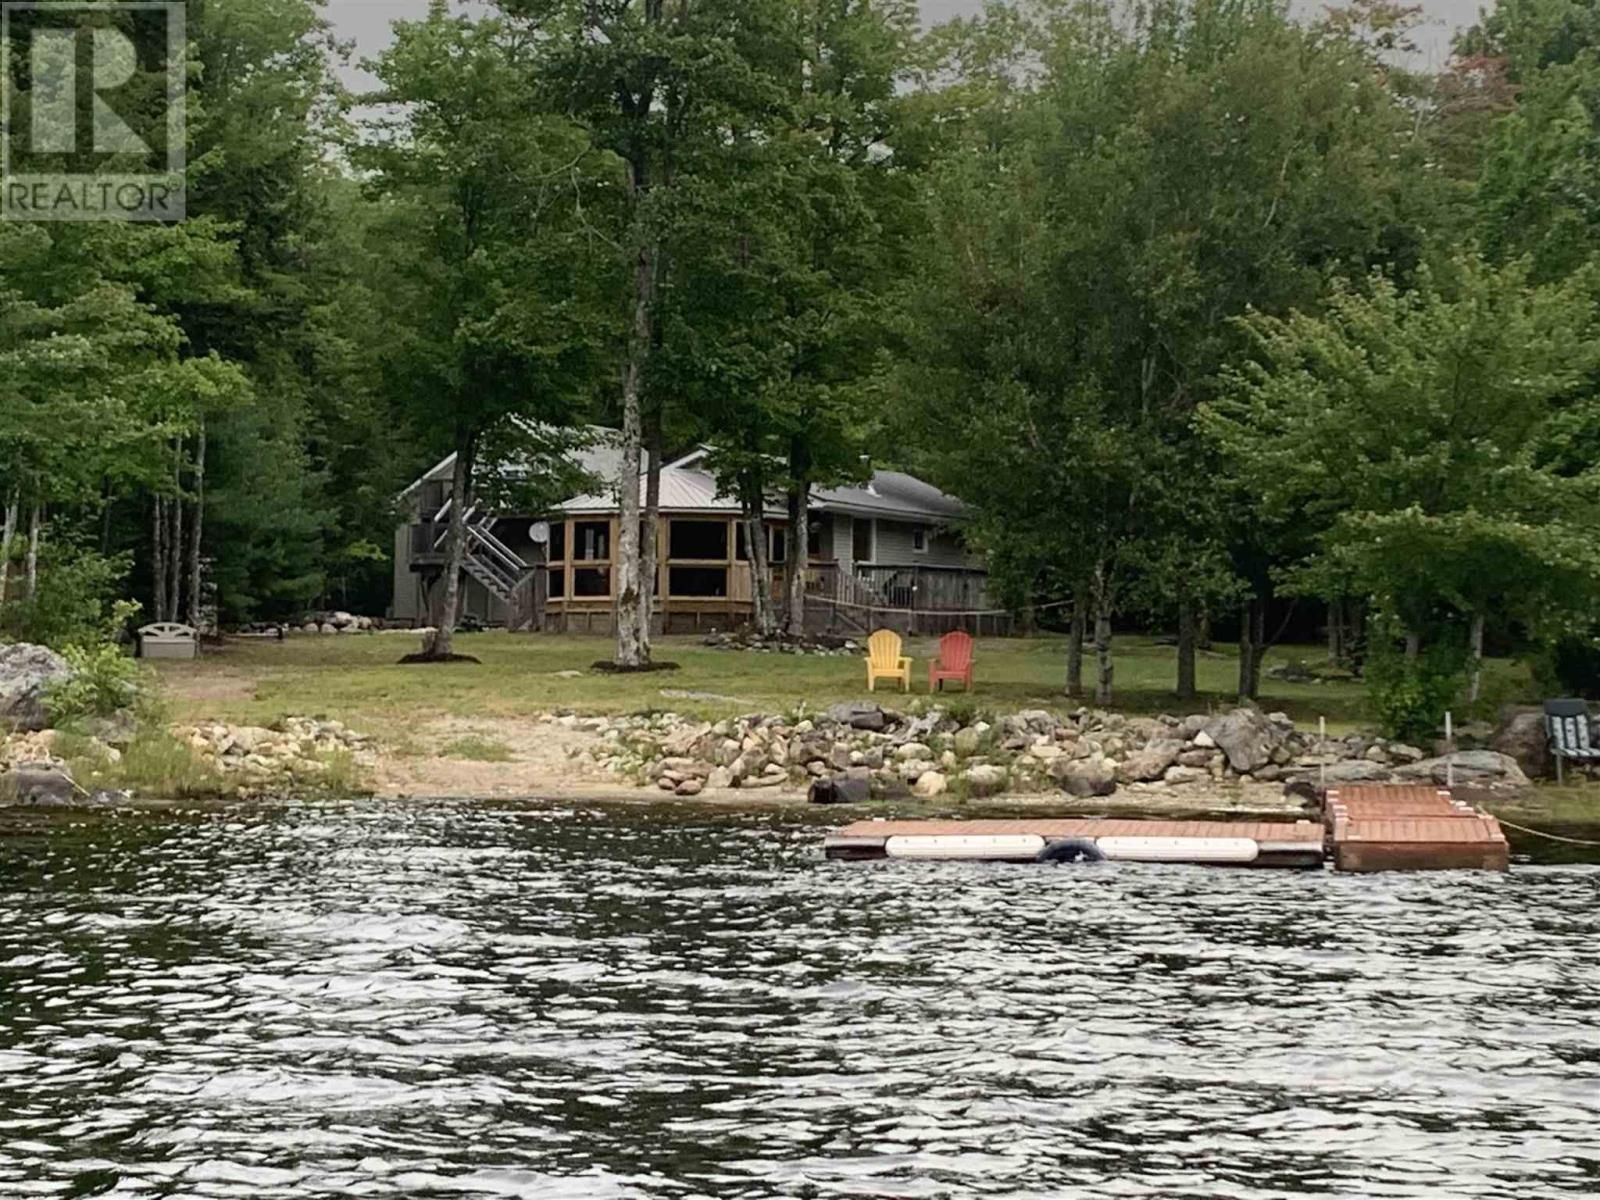 Main Photo: 107 Pine Point Way in Molega North: Recreational for sale : MLS®# 202122988